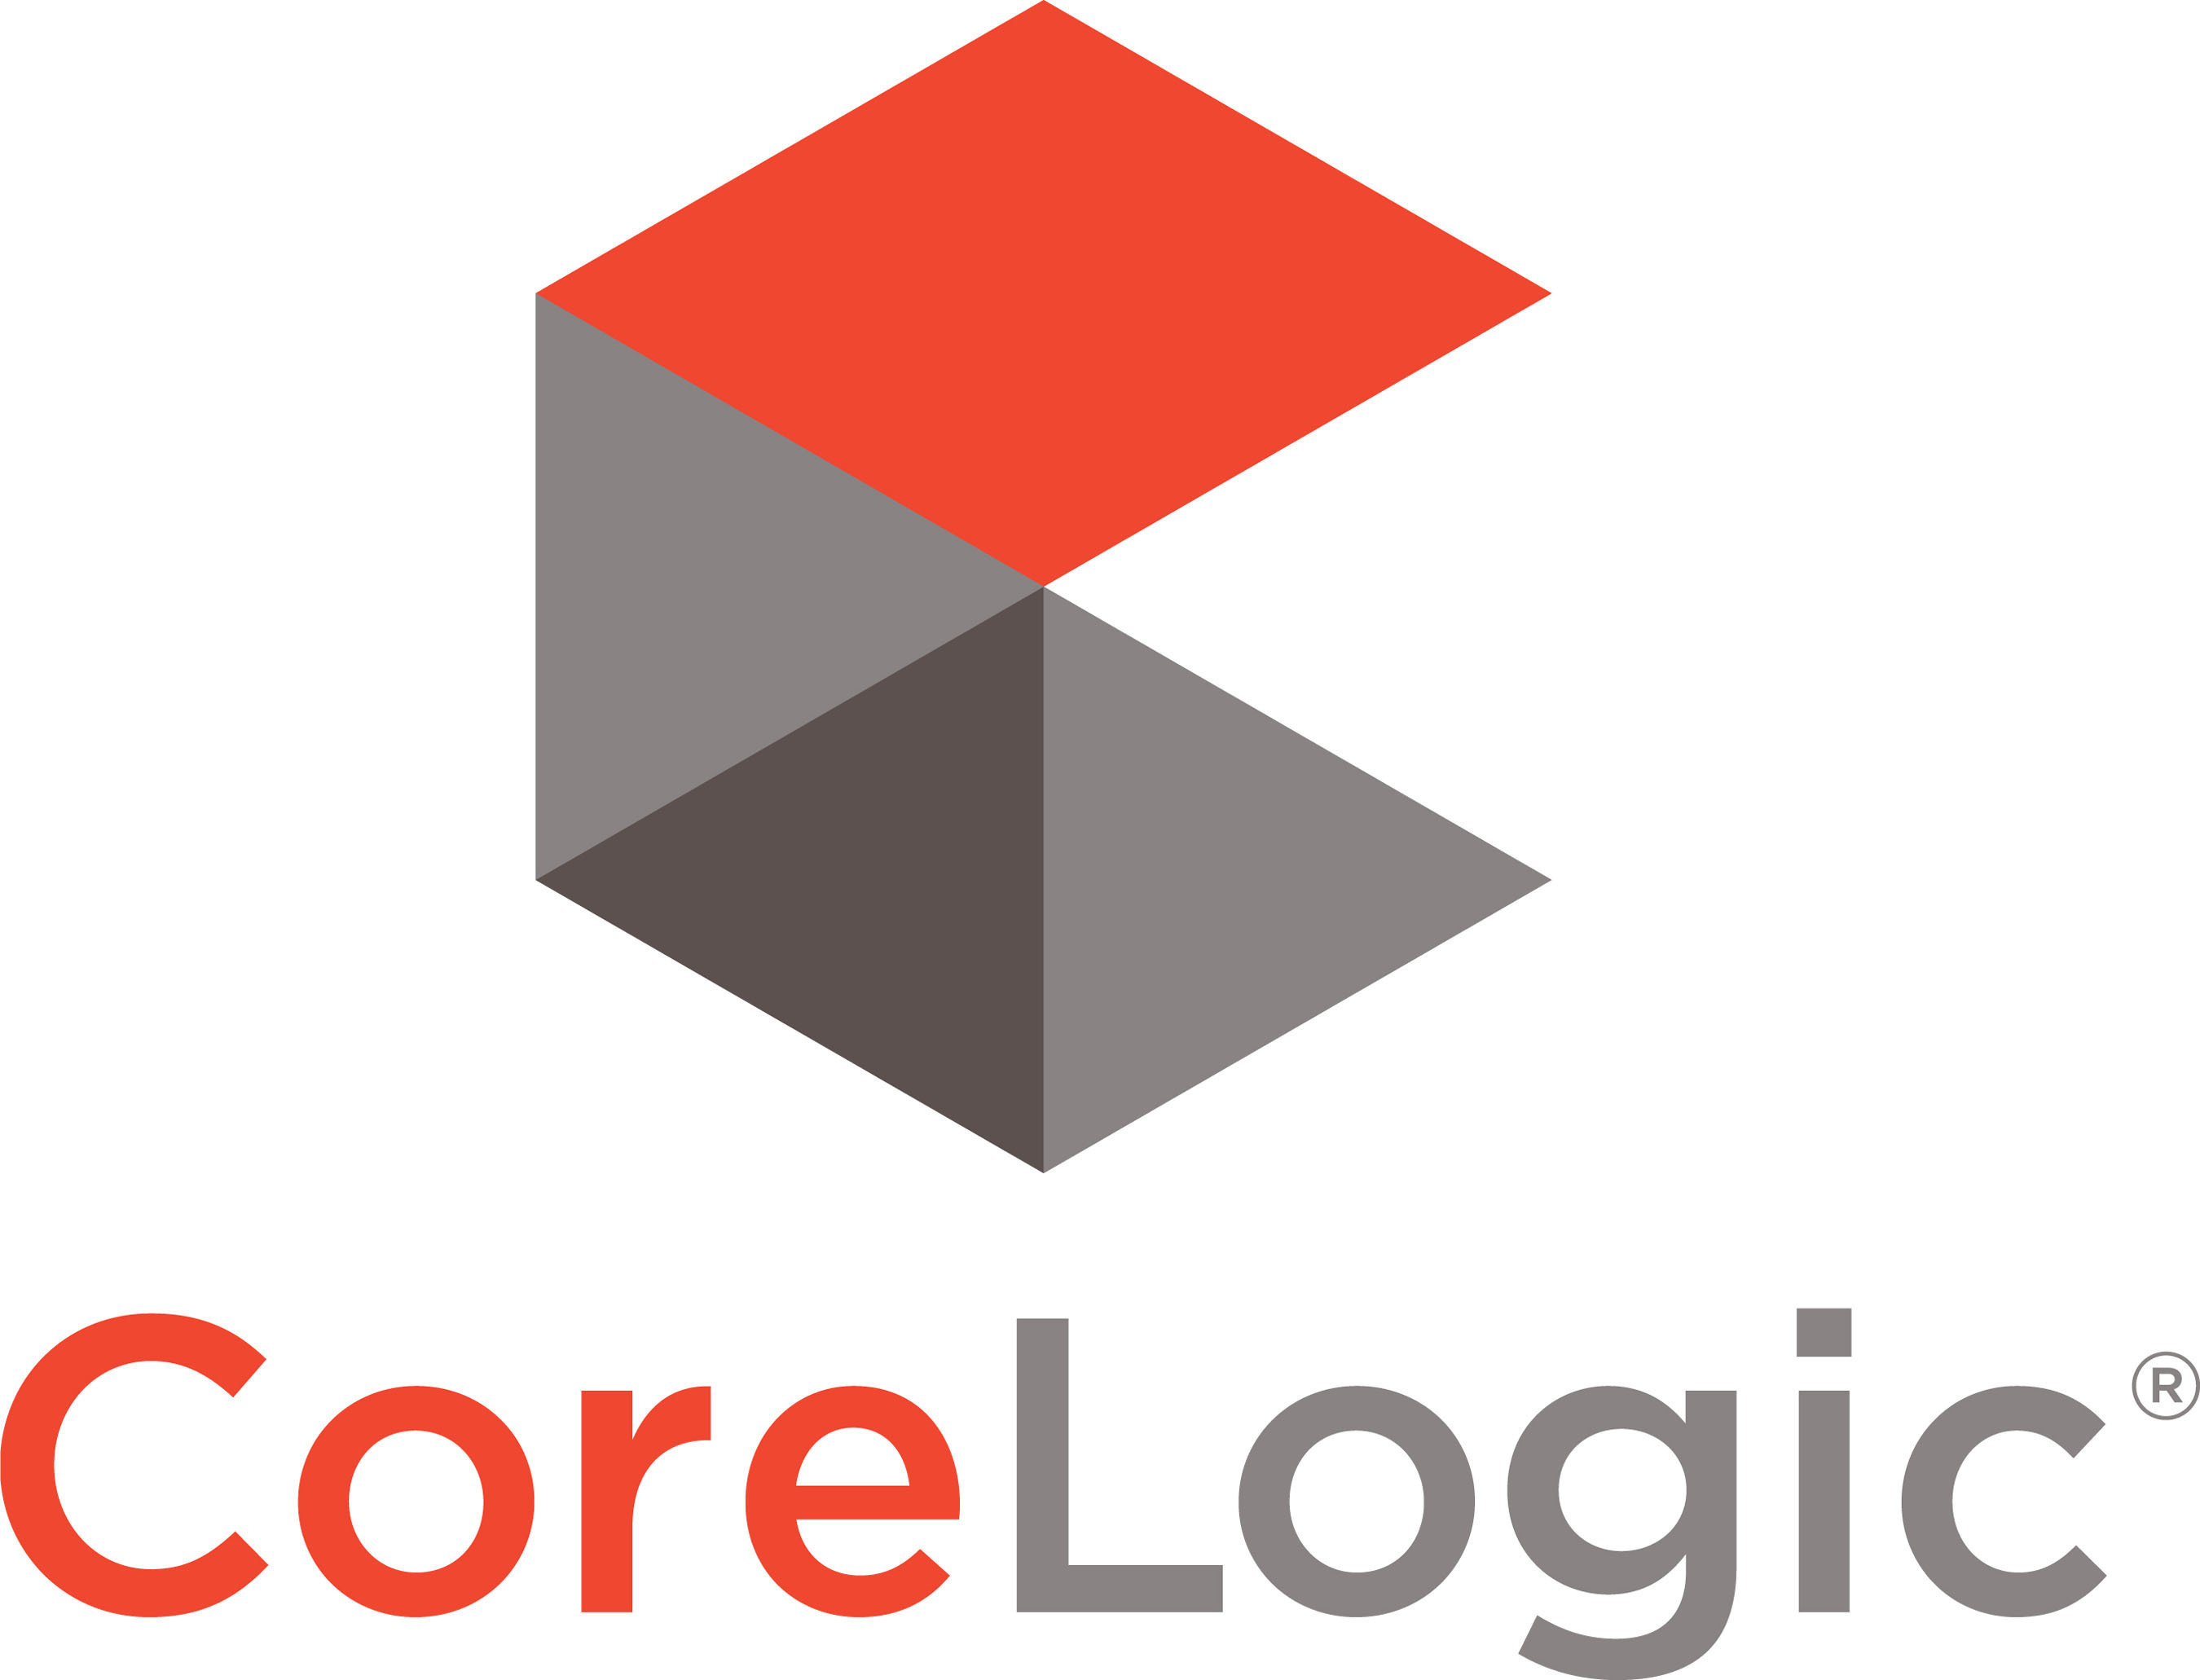 CoreLogic, A Real Estate Data and Analytics Company.